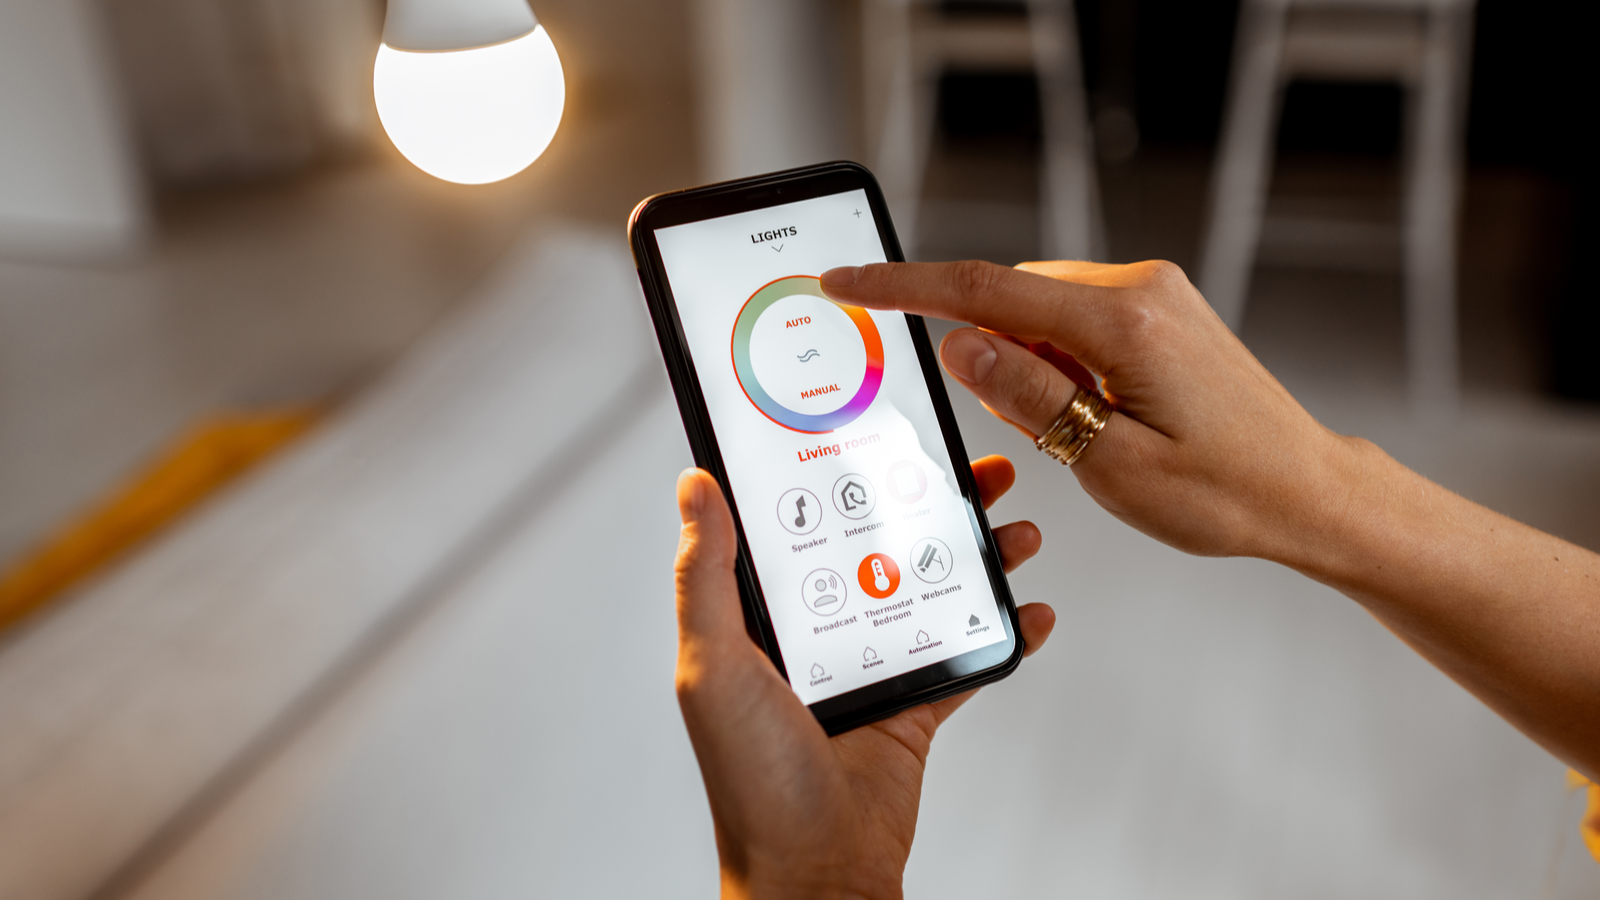 Controlling smart bulb temperature and intensity with smartphone app